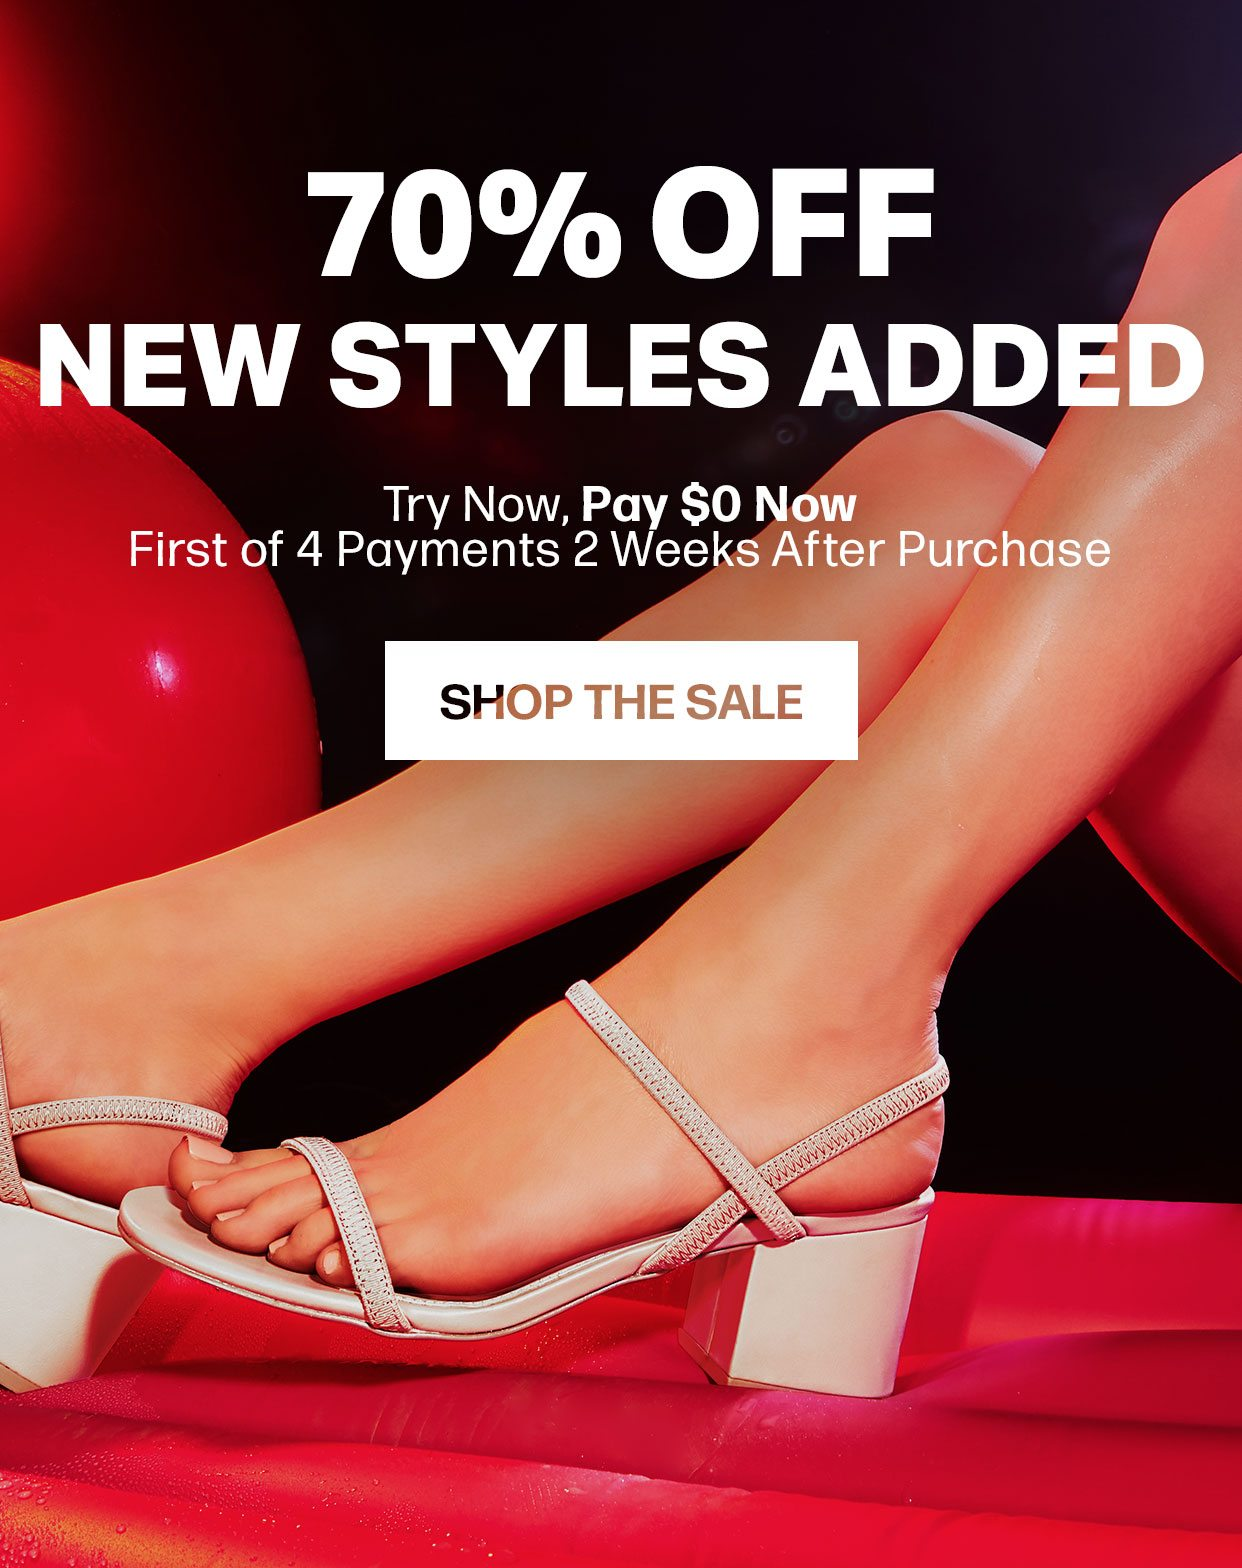 70% Off New Styles Added